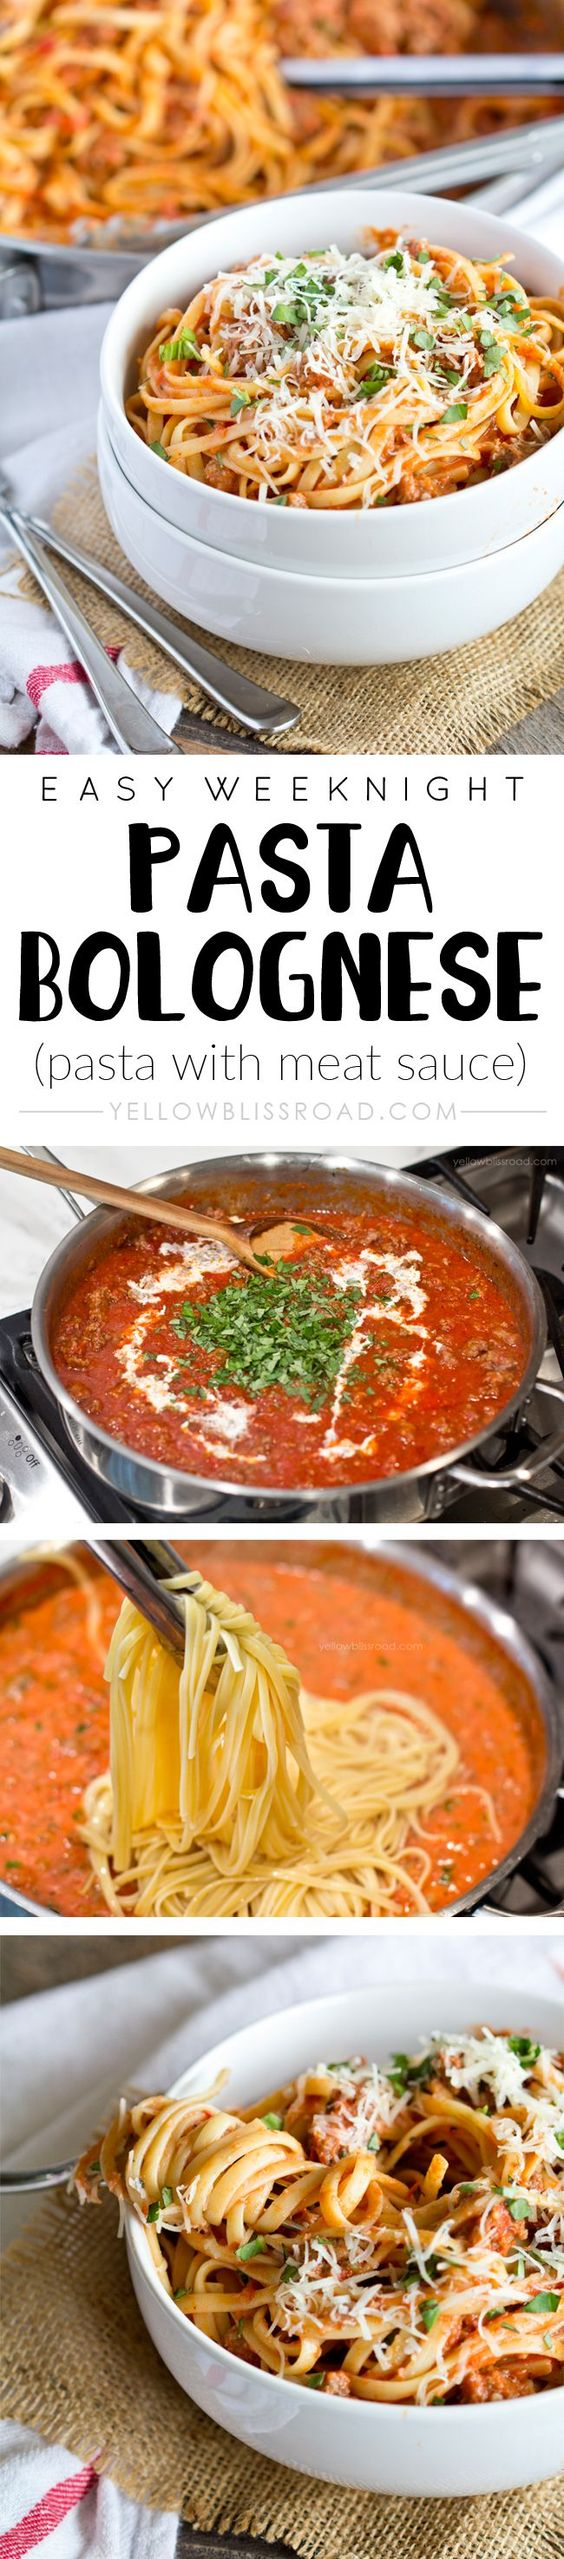 ... with Meat Sauce | Recipe | Pasta, Sauces and Spaghetti With Meat Sauce